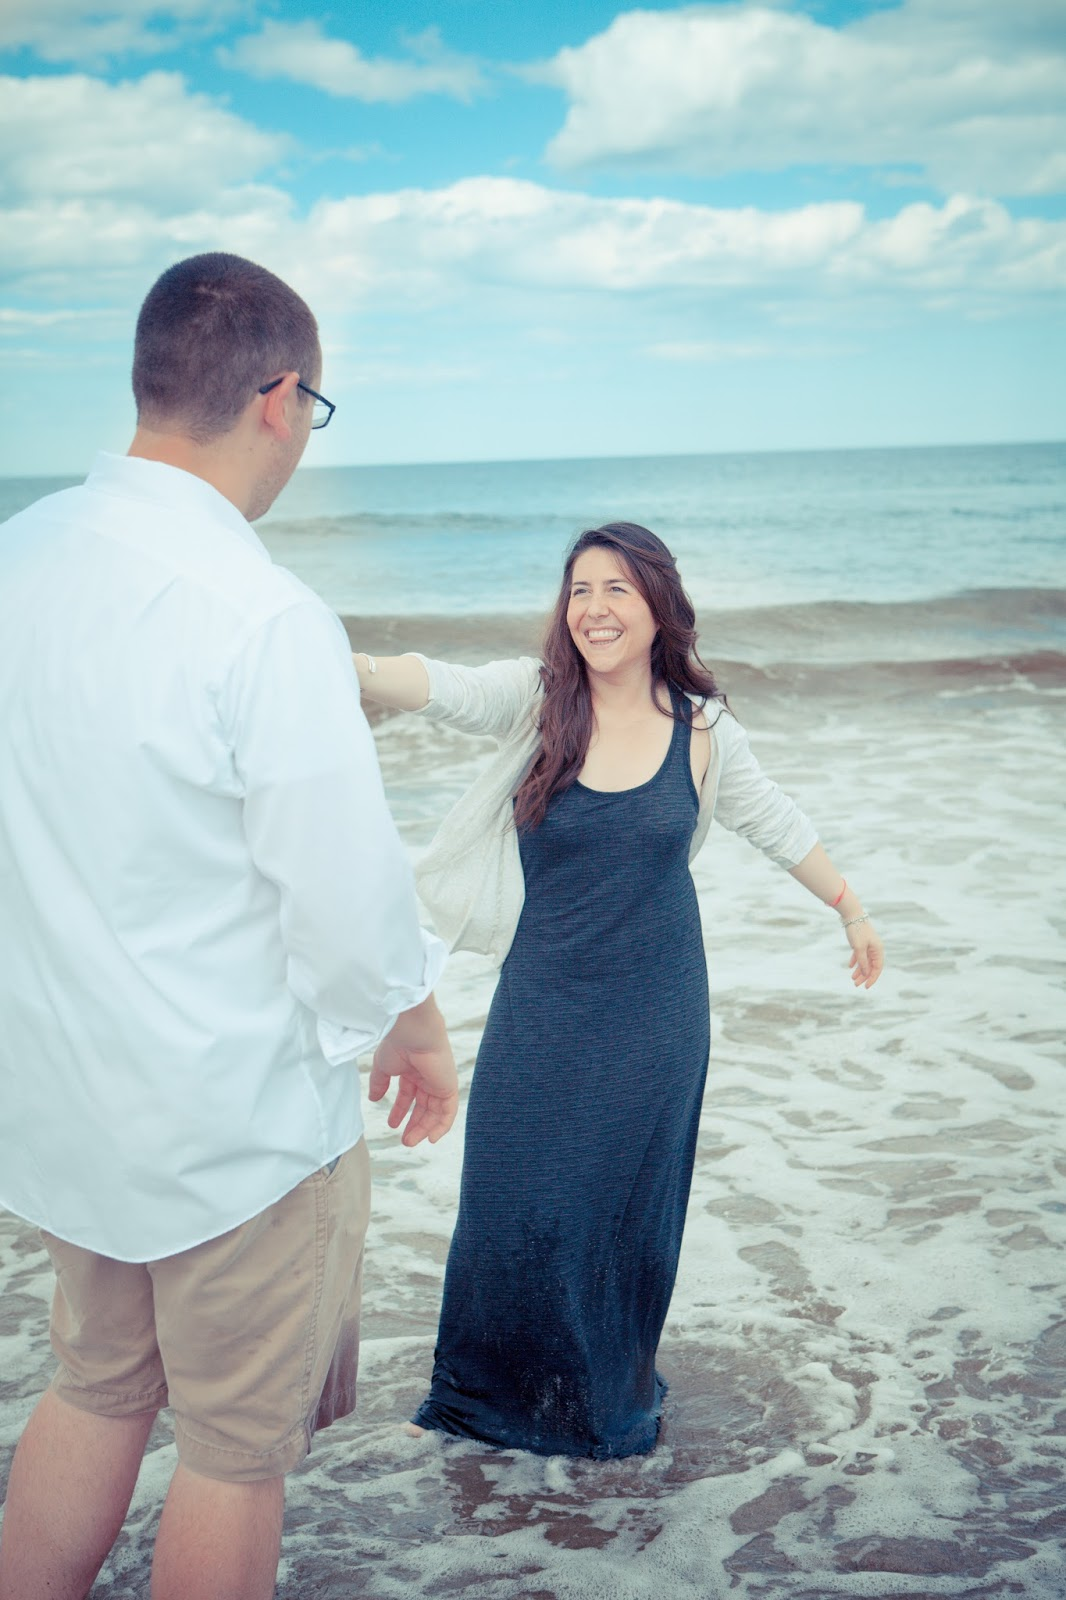 Boro Photography: Creative Visions, Lindy and Ryan - Sneak Peek, Maine Engagement